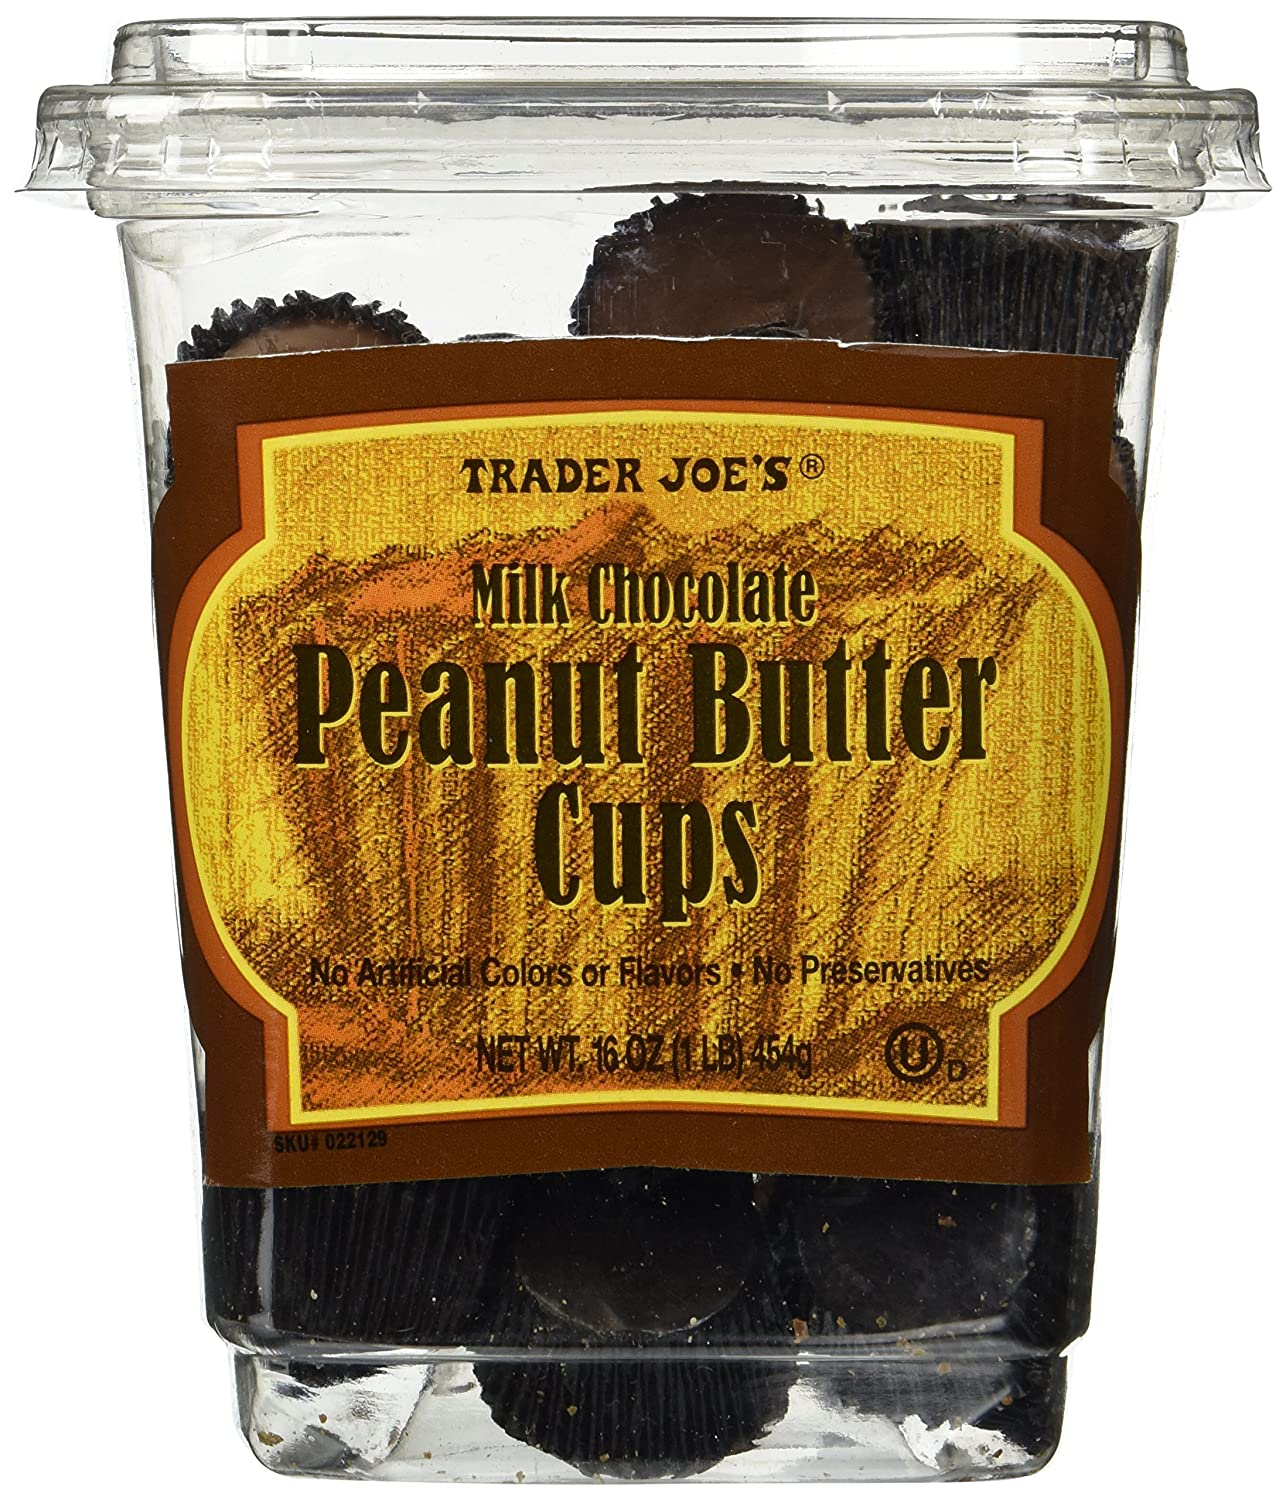 Image result for trader joe's milk chocolate peanut butter cups